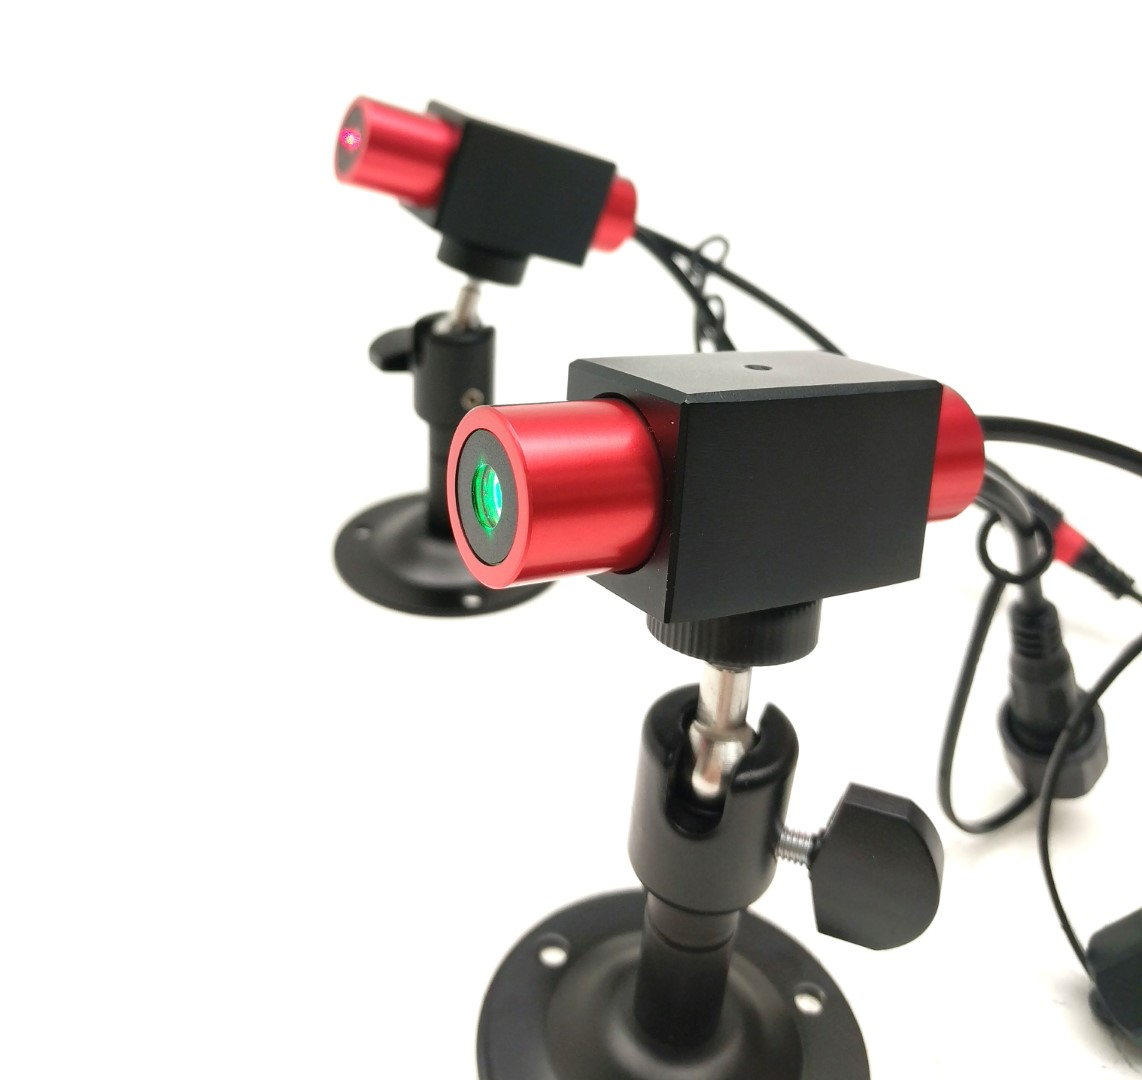 5 mW 635 nm Red Premium Structured Line No Central Dot Laser, 37° fan angle, adjustable focus, TTL+, Sealed IP67